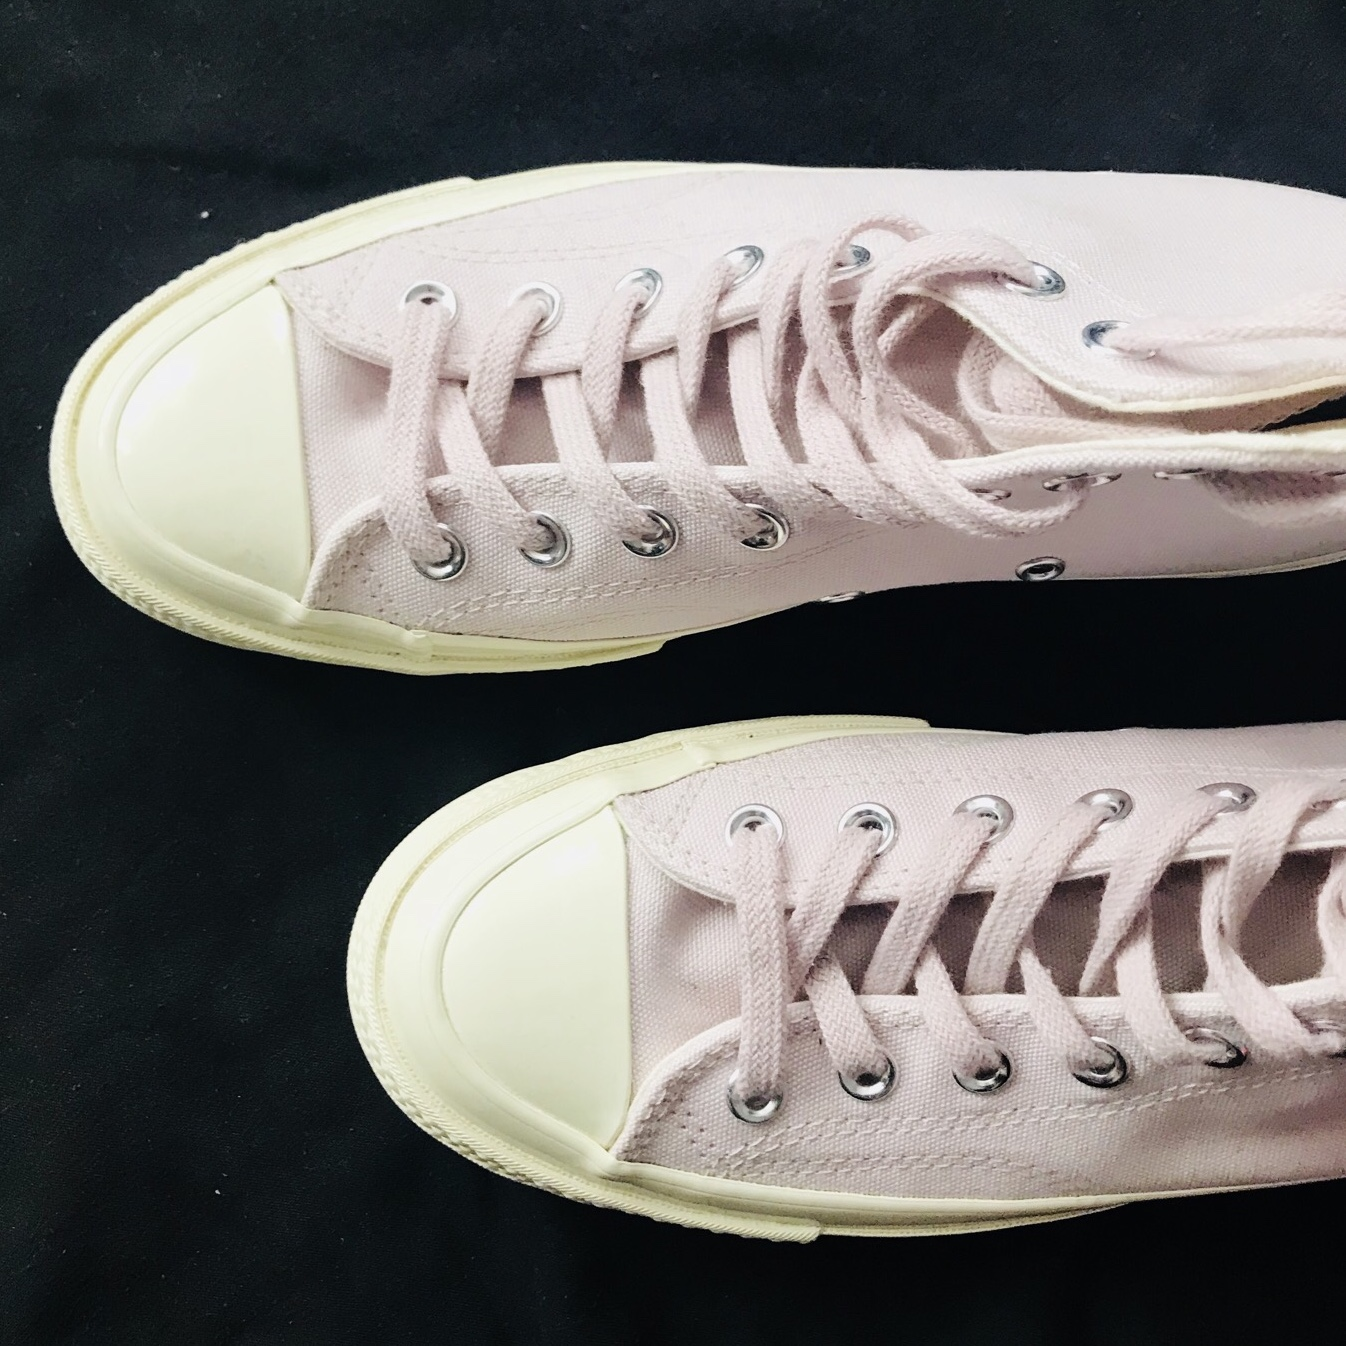 Converse chuck 70's in Barely Rose. Never worn, Depop